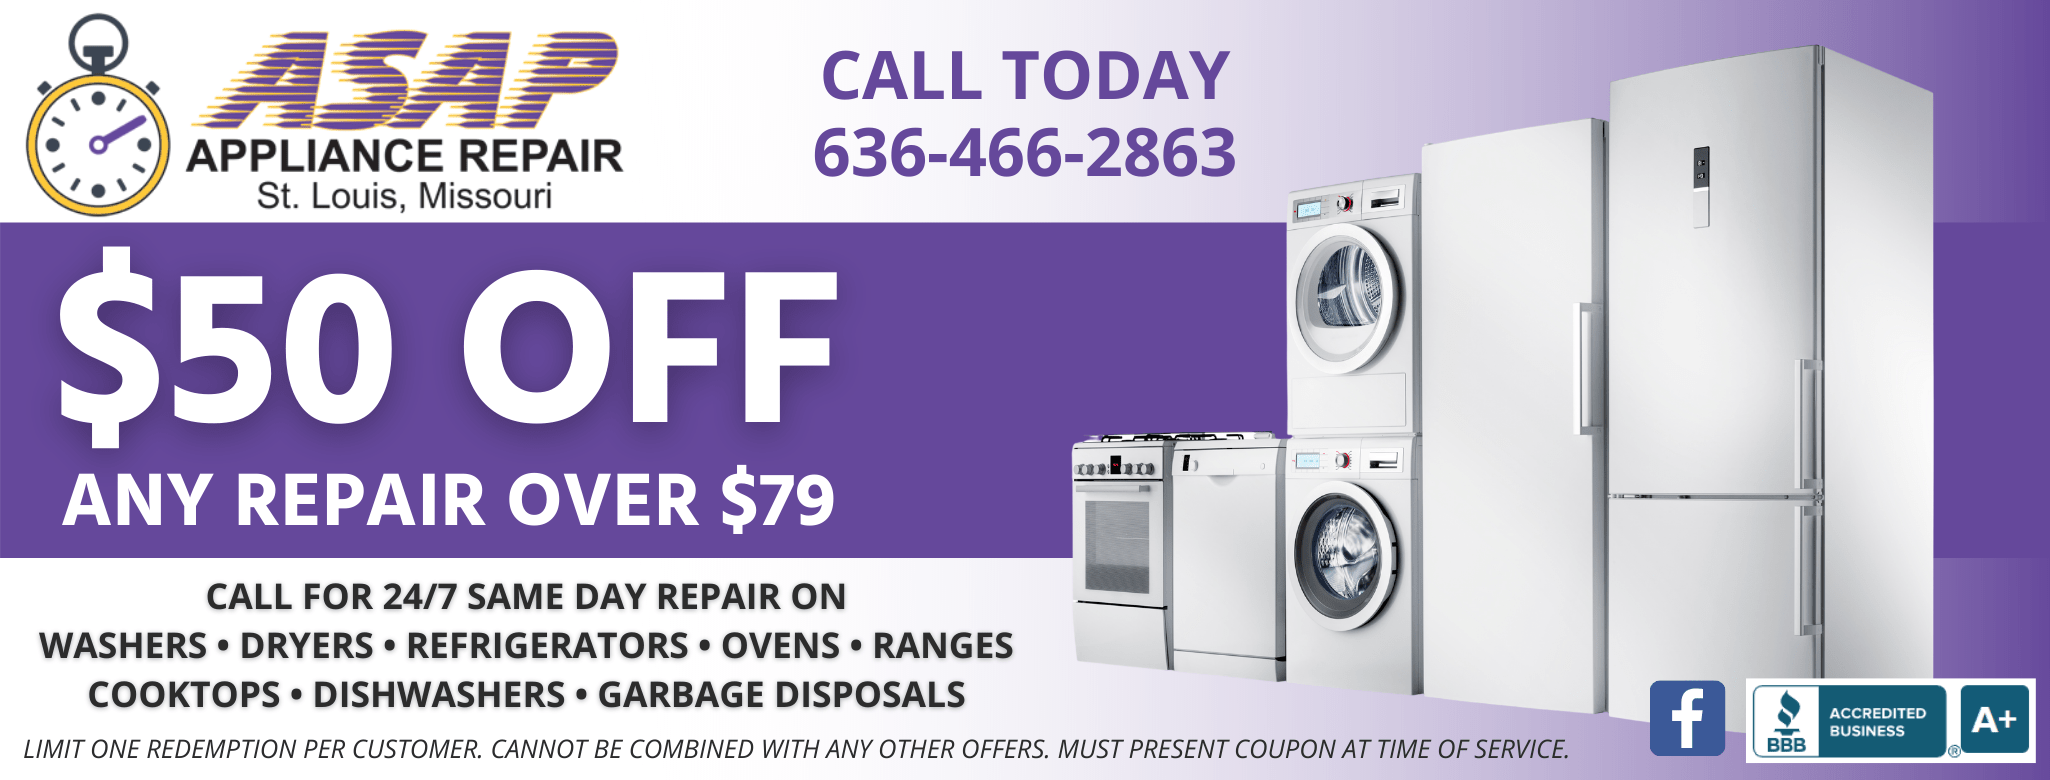 ASAP Appliance Repair Service Call Repair Coupon $50 Off